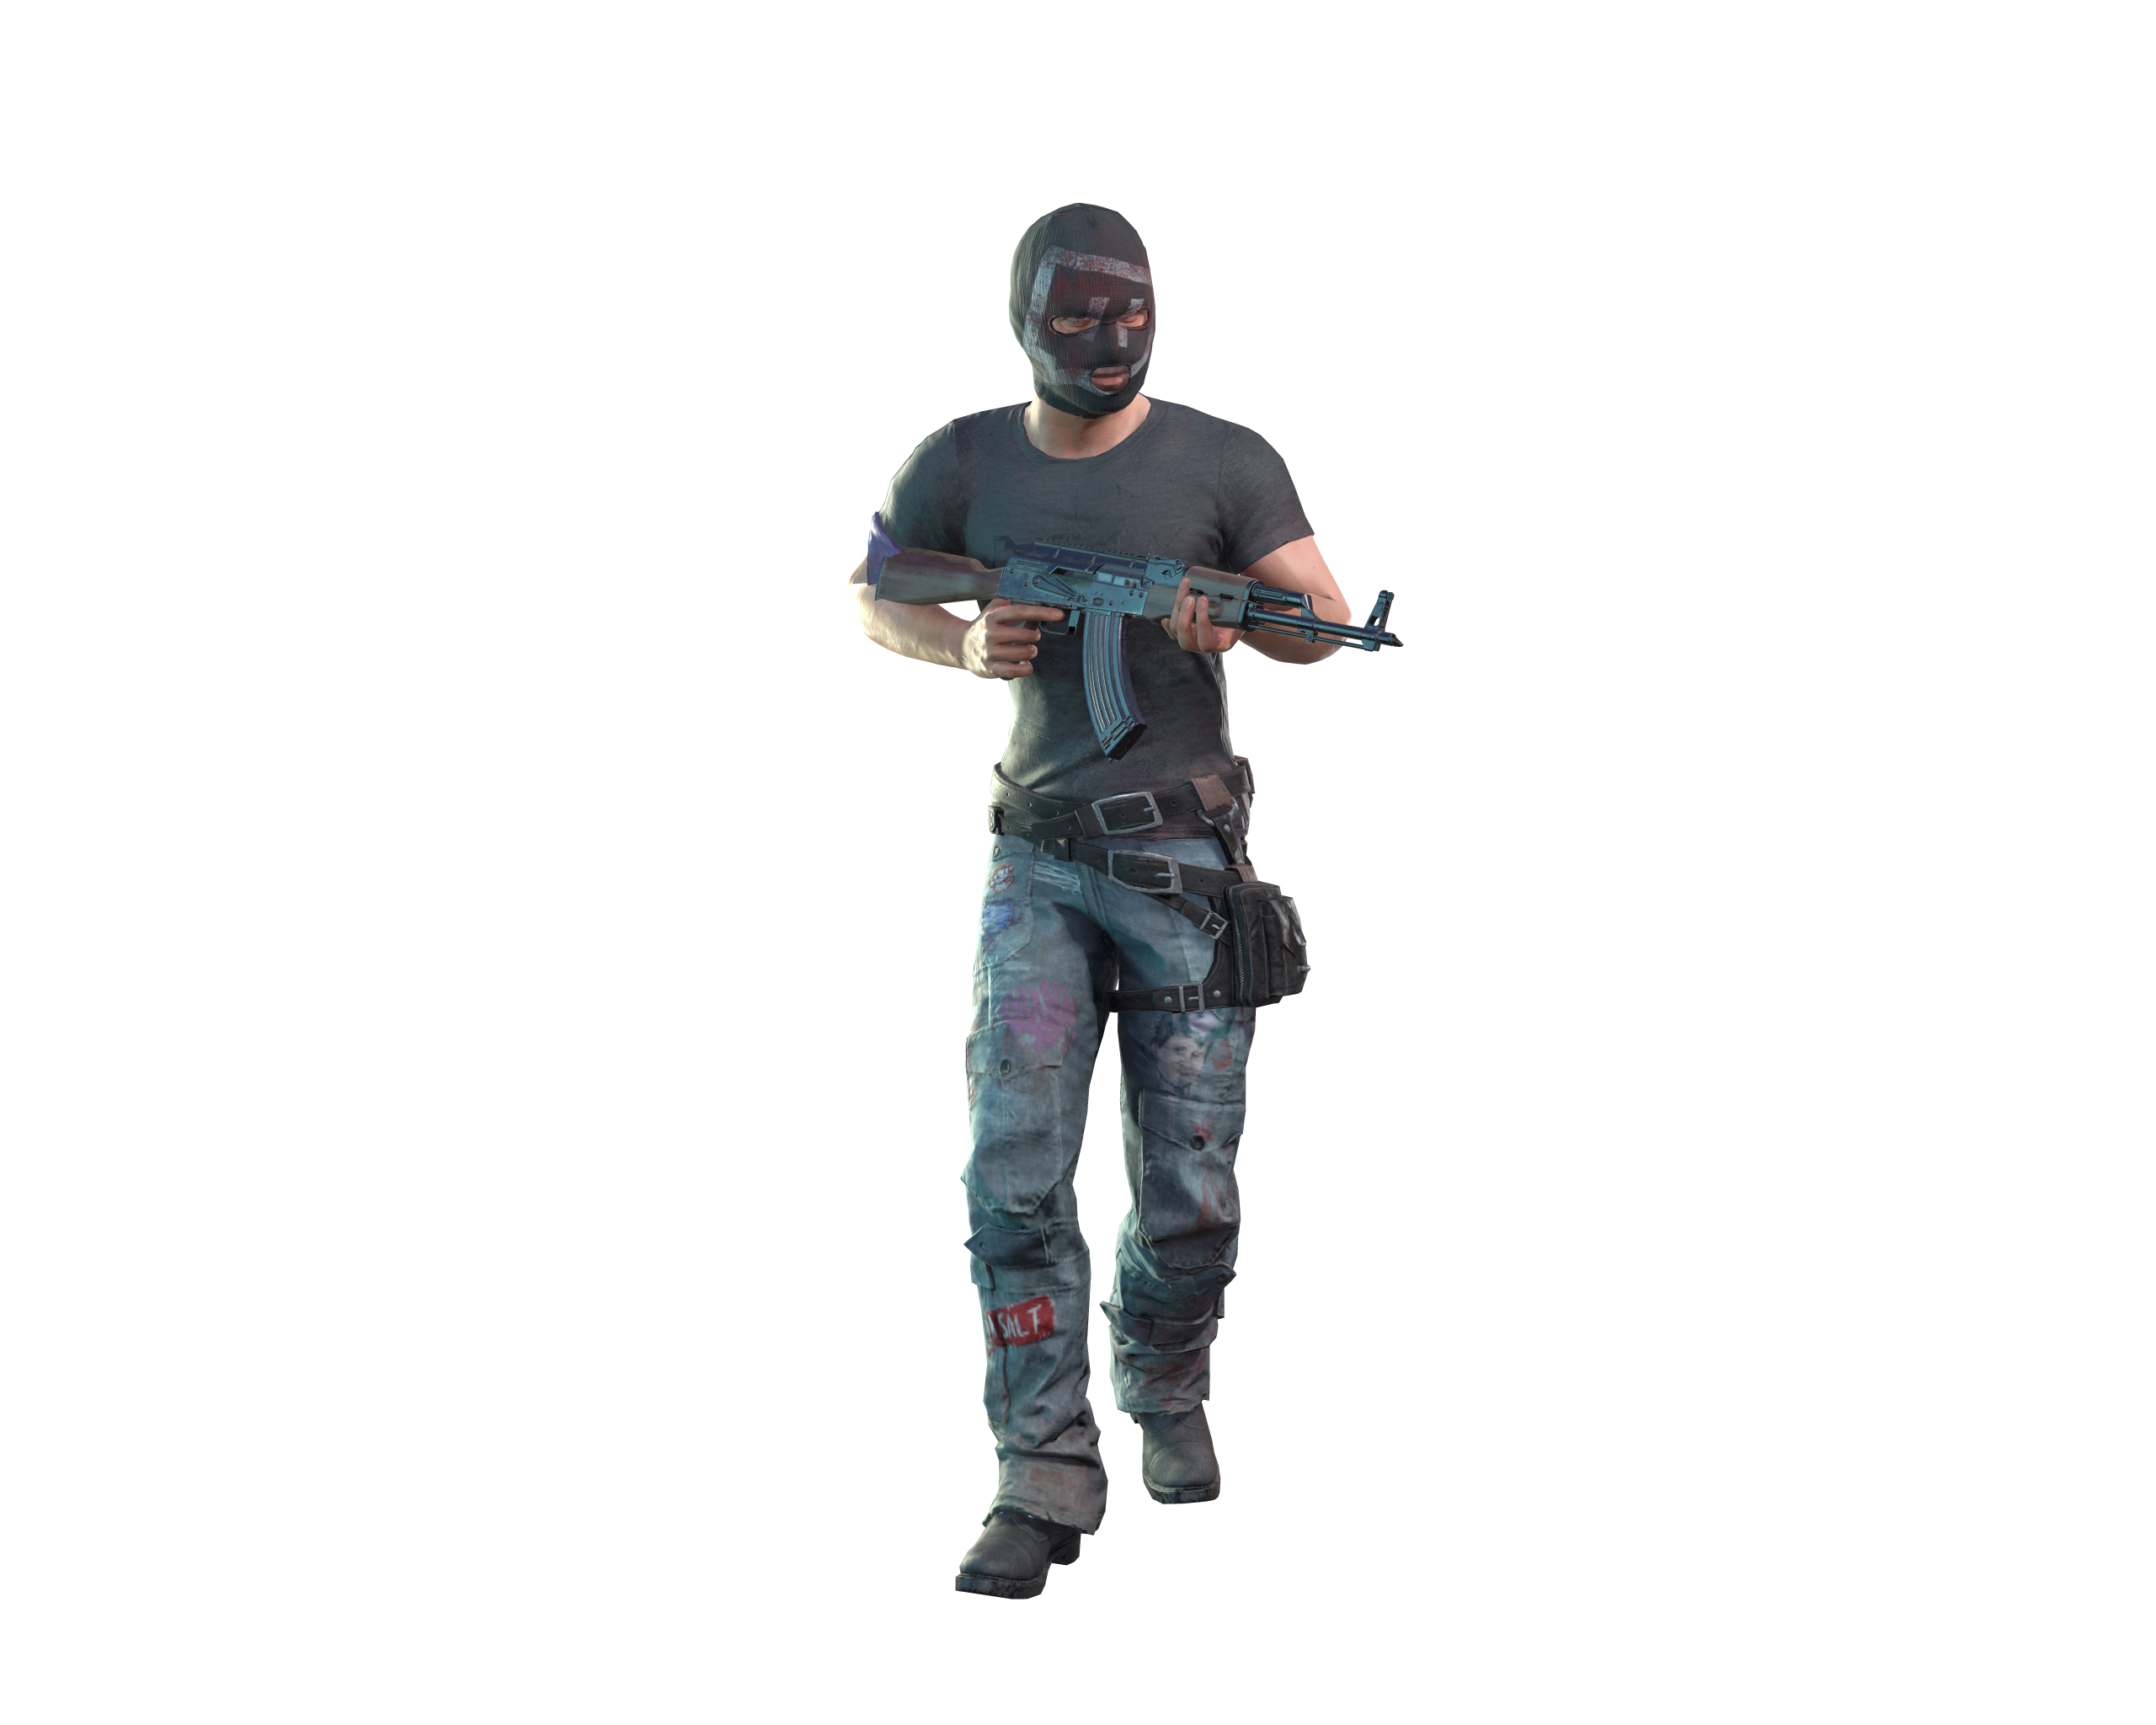 Playerunknown S Battlegrounds Png Images Free Download: PLAYERUNKNOWN'S BATTLEGROUNDS Exclusive New Skins For